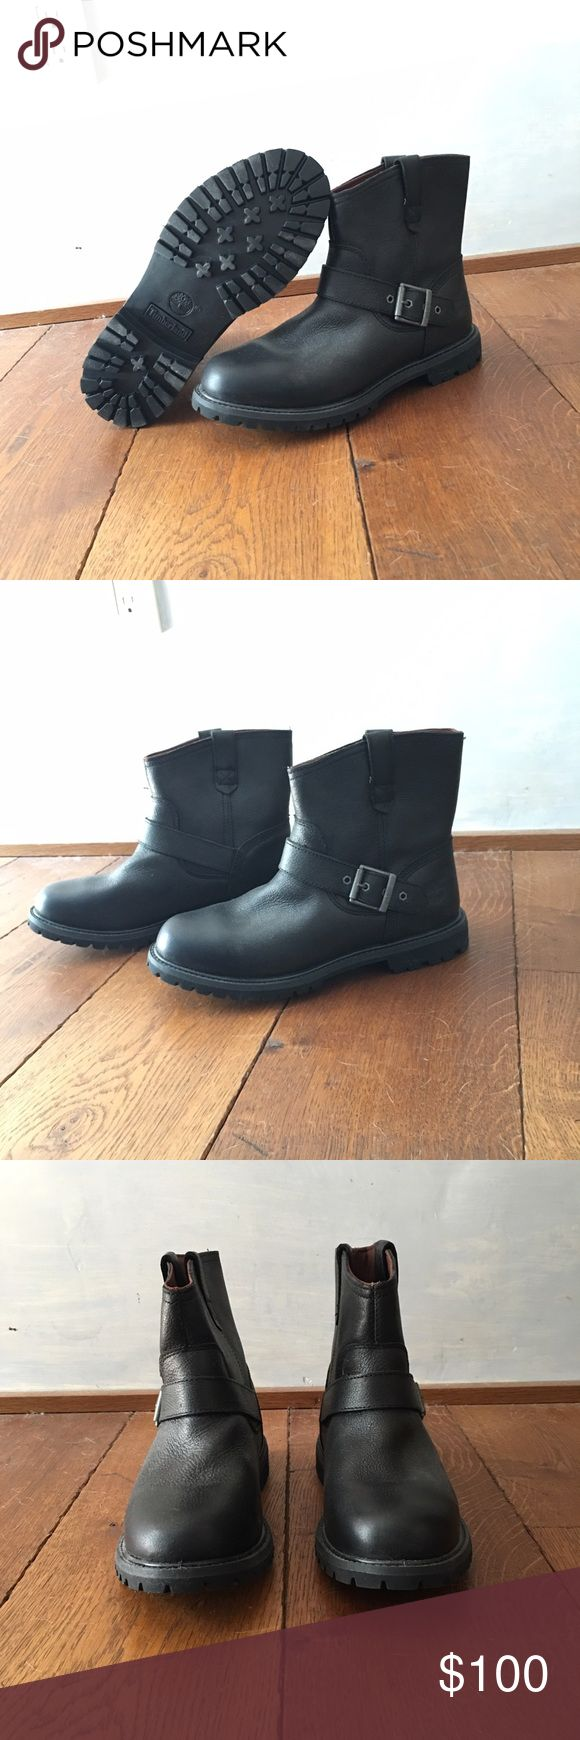 NBW leather timberland boots Brand new, never been worn, size 9, Timberland boots. Perfect for the upcoming fall and winter! Timberland Shoes Winter & Rain Boots